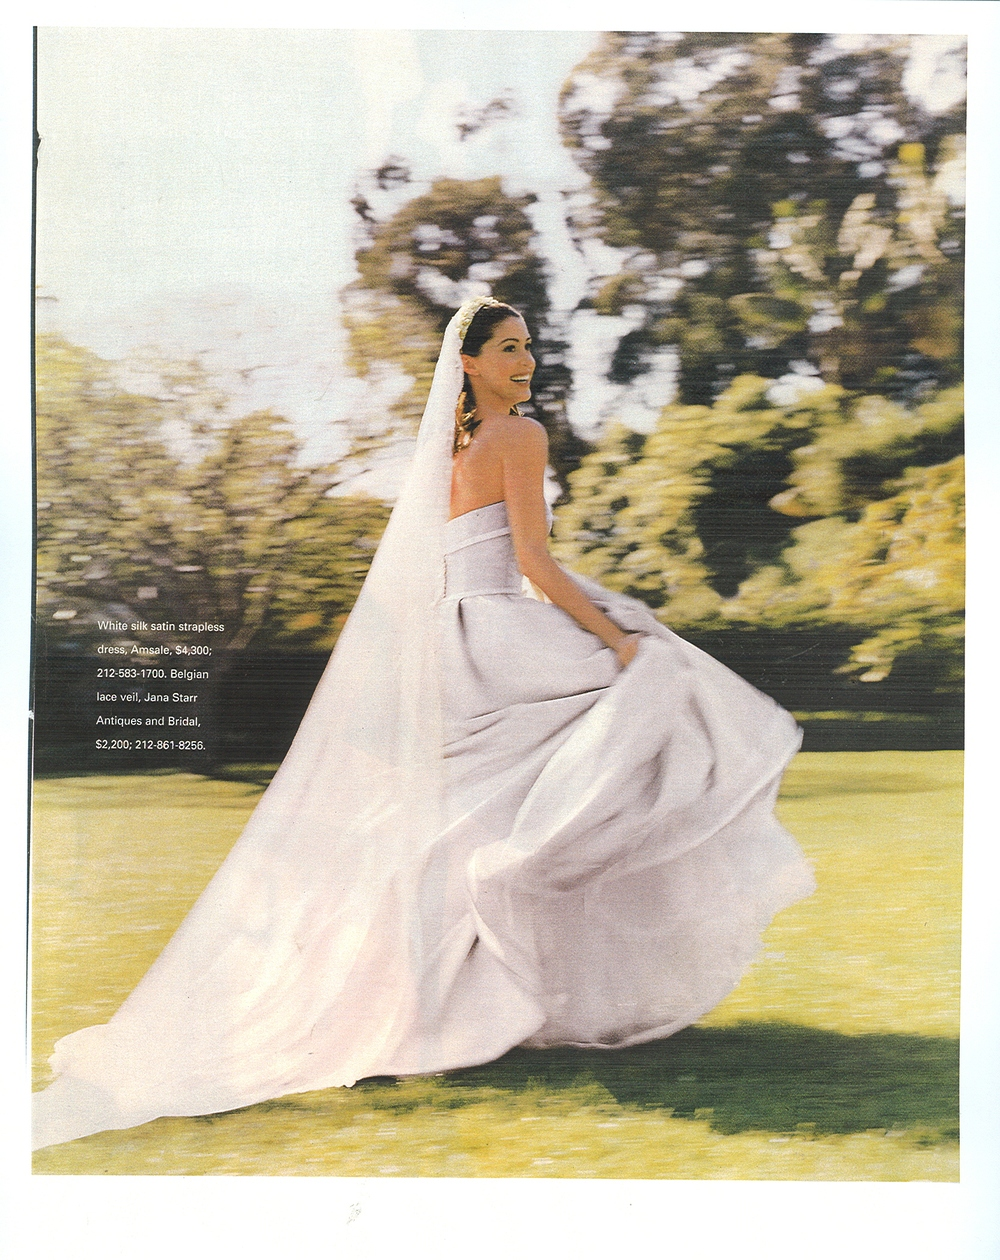 SE_InStyle Weddings_Summer 2002_9.jpg